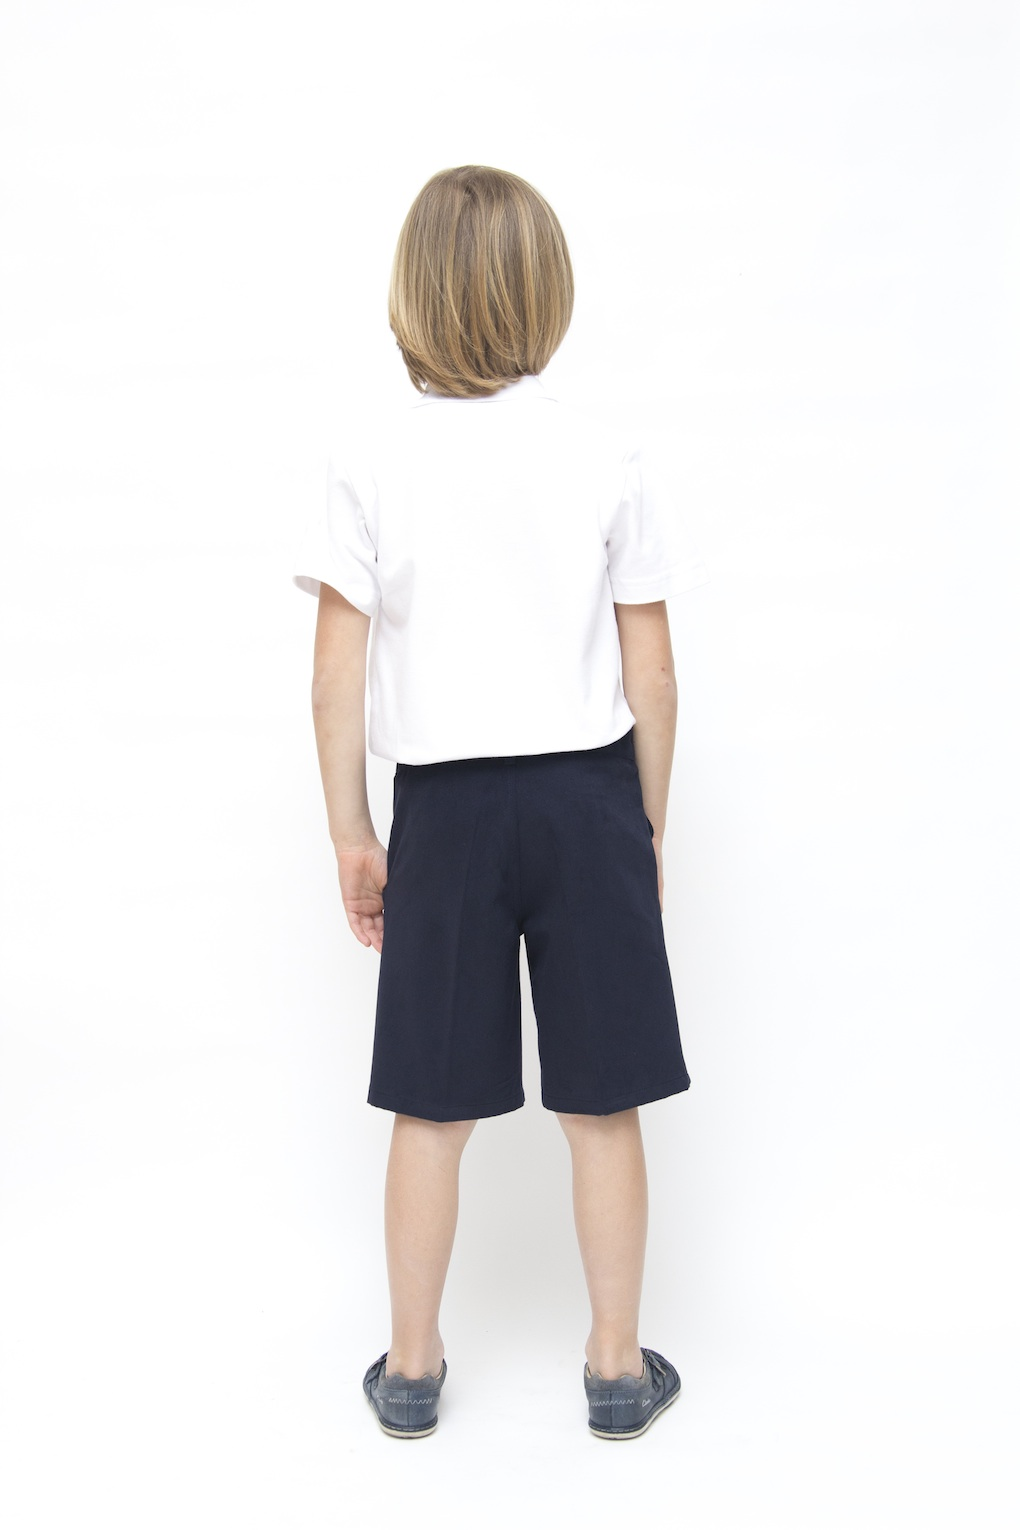 Shop uniform shorts at Lands' End to find the best boys school uniform shorts for your child. We have a variety of school uniform shorts for boys at Lands' End.